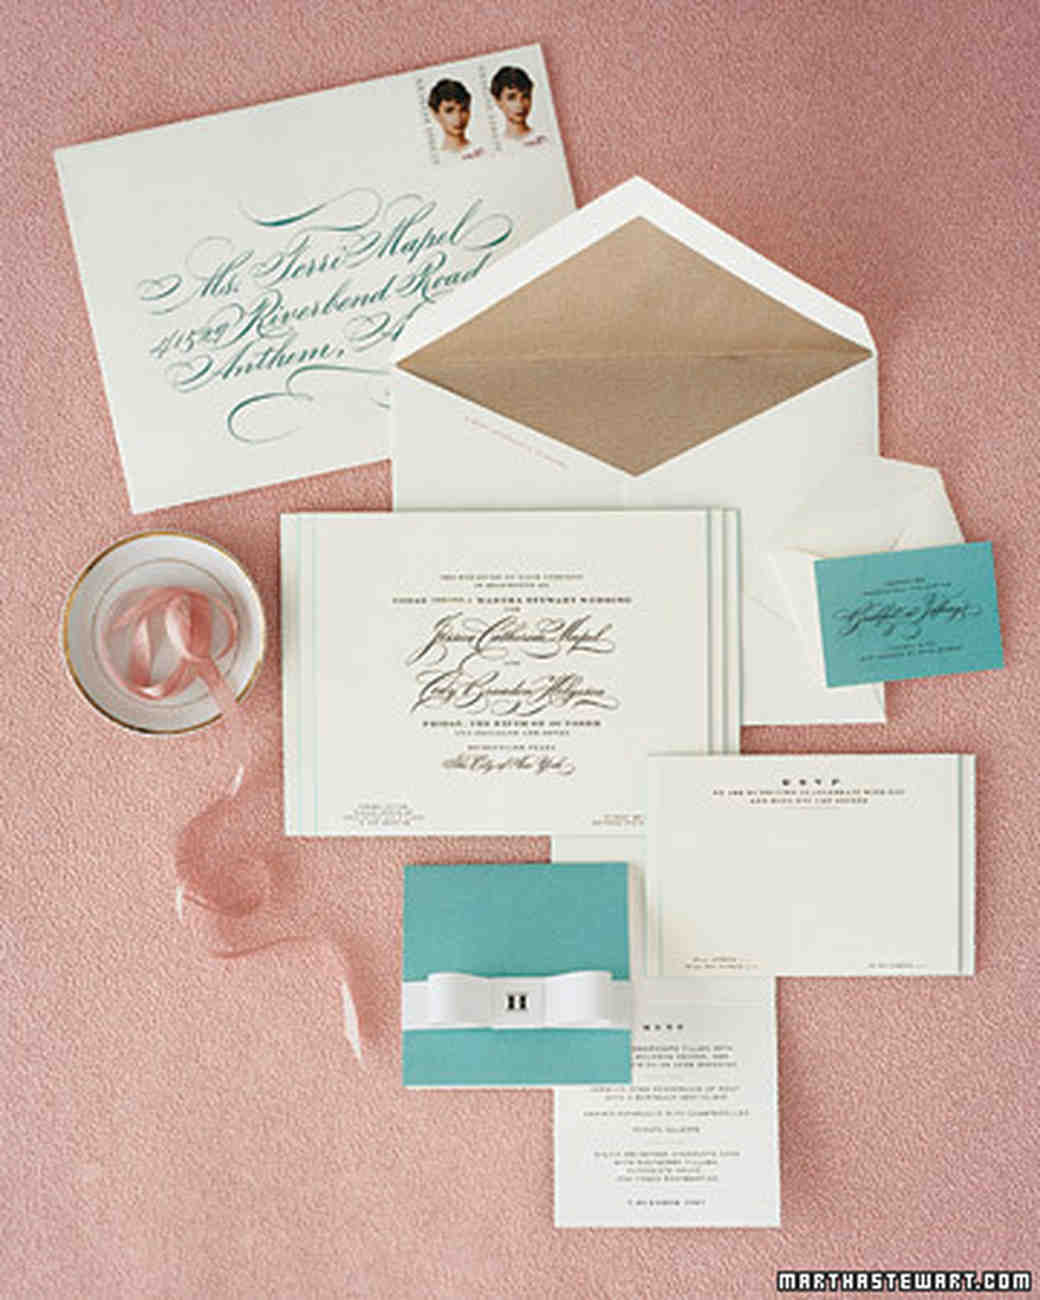 addressing wedding invitations when there is no inner envelope - 28 ...